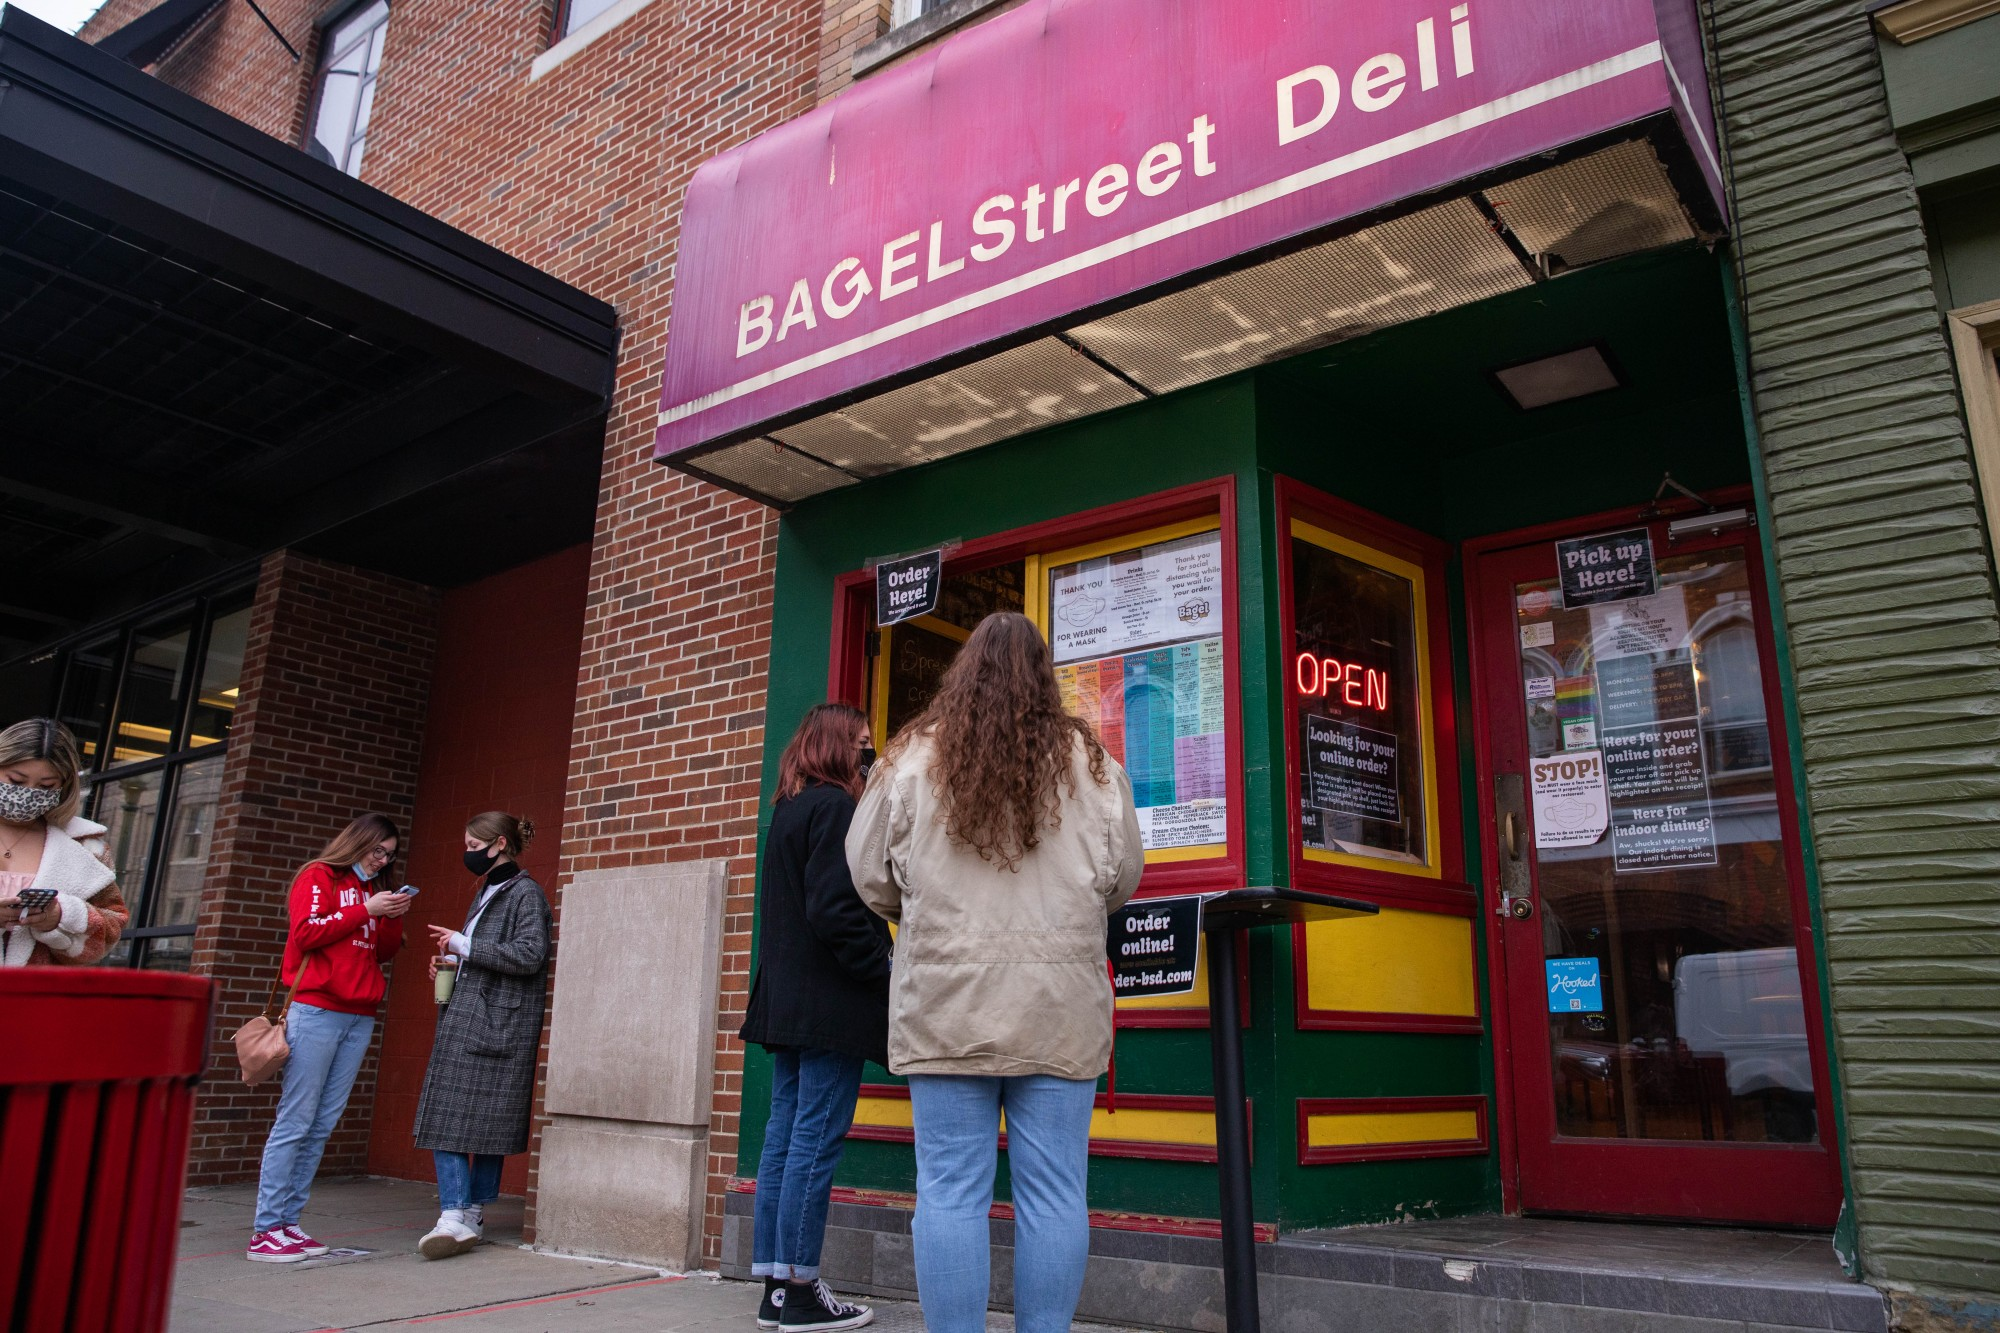 Customers wait for their order outside Bagel Street Deli in uptown Athens, Ohio, on Sunday, February 14, 2021.